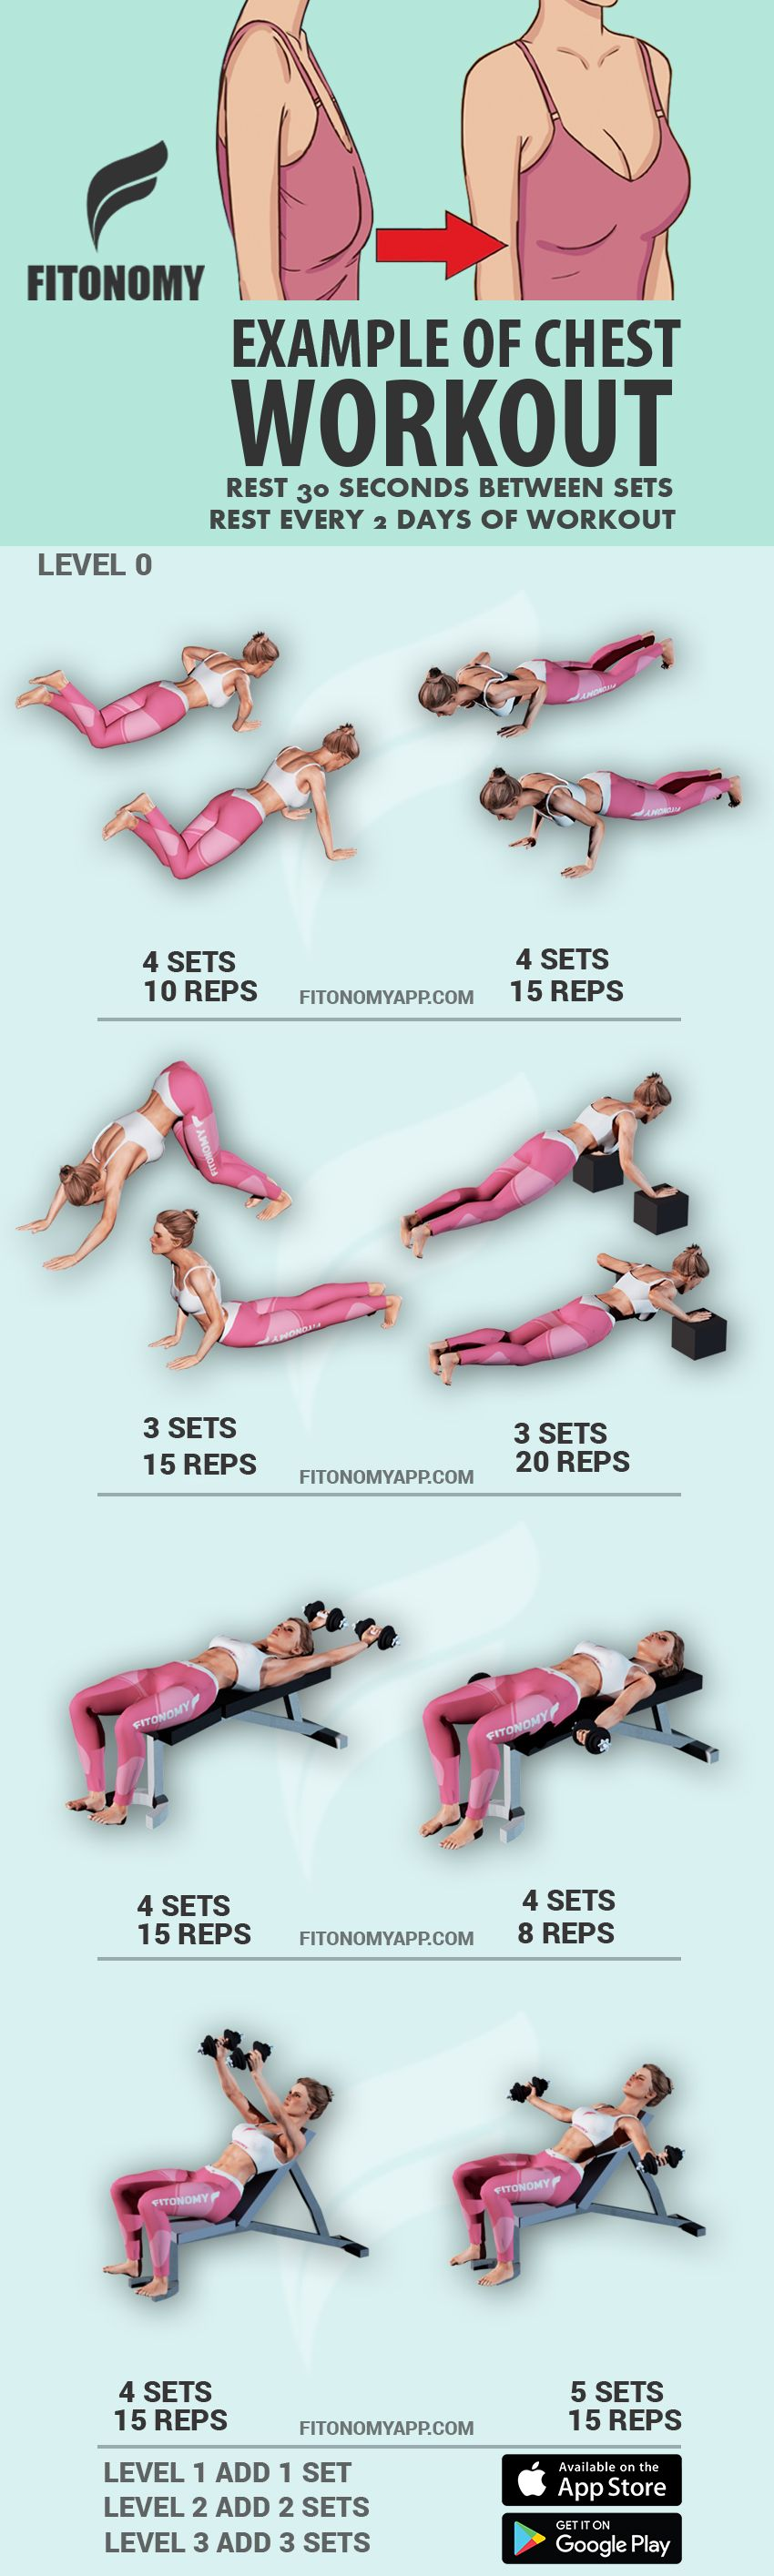 Chest workout with Fitonomy App! Available on App and Play